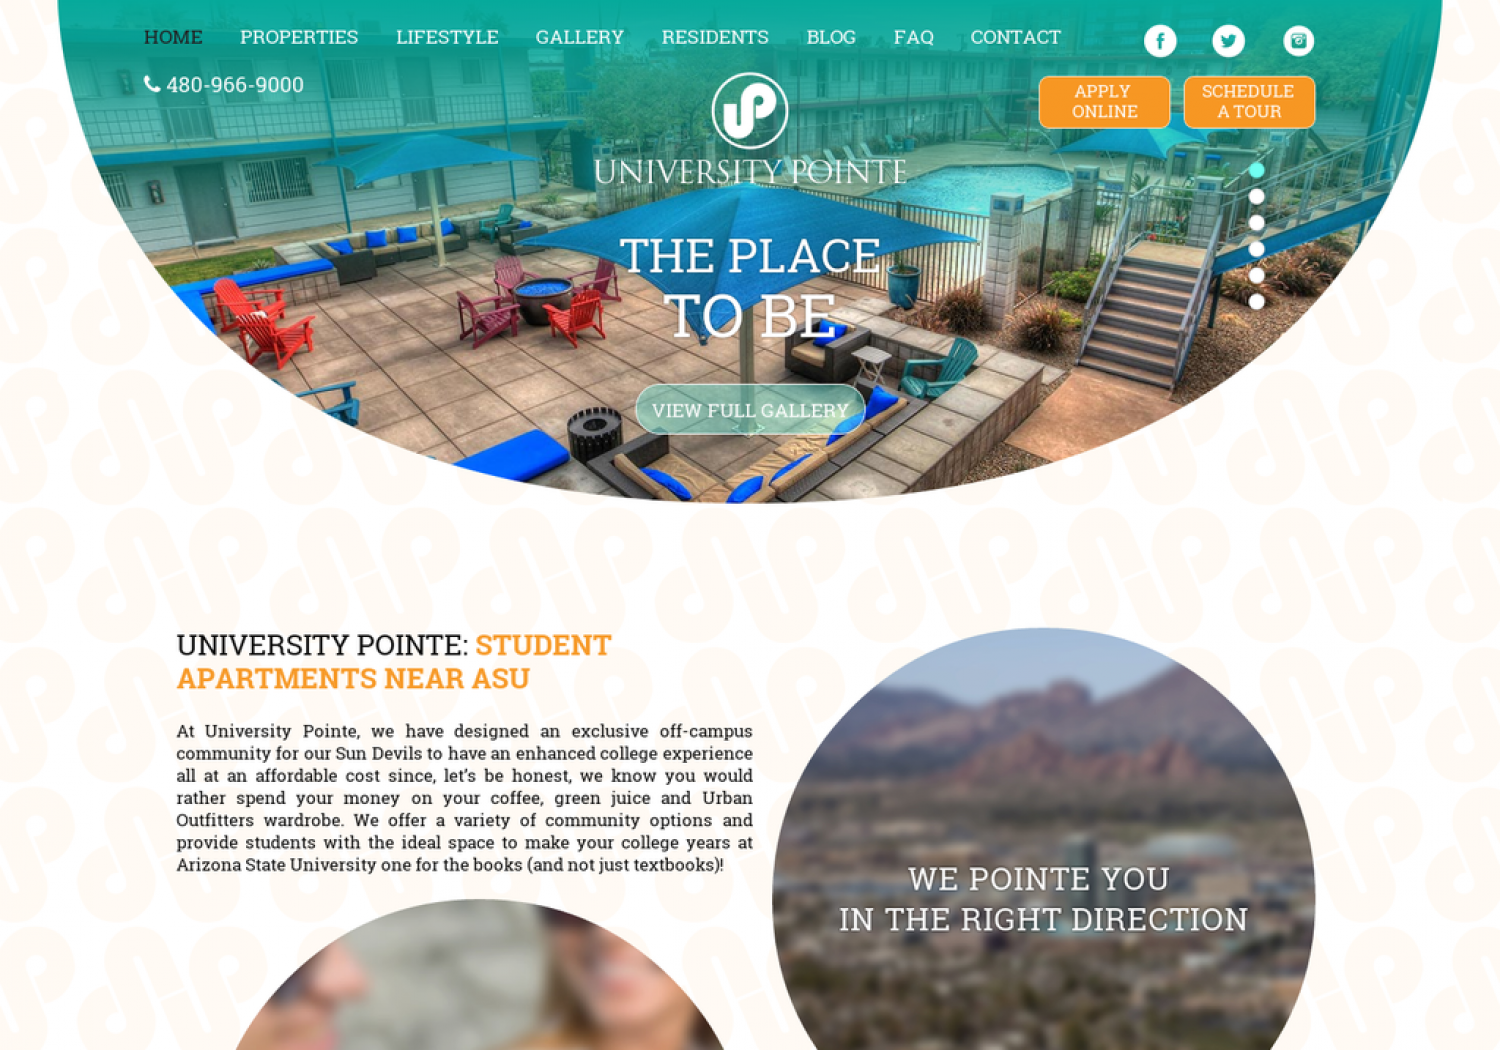 The Best Off-Campus ASU Apartments in Tempe, Arizona Infographic